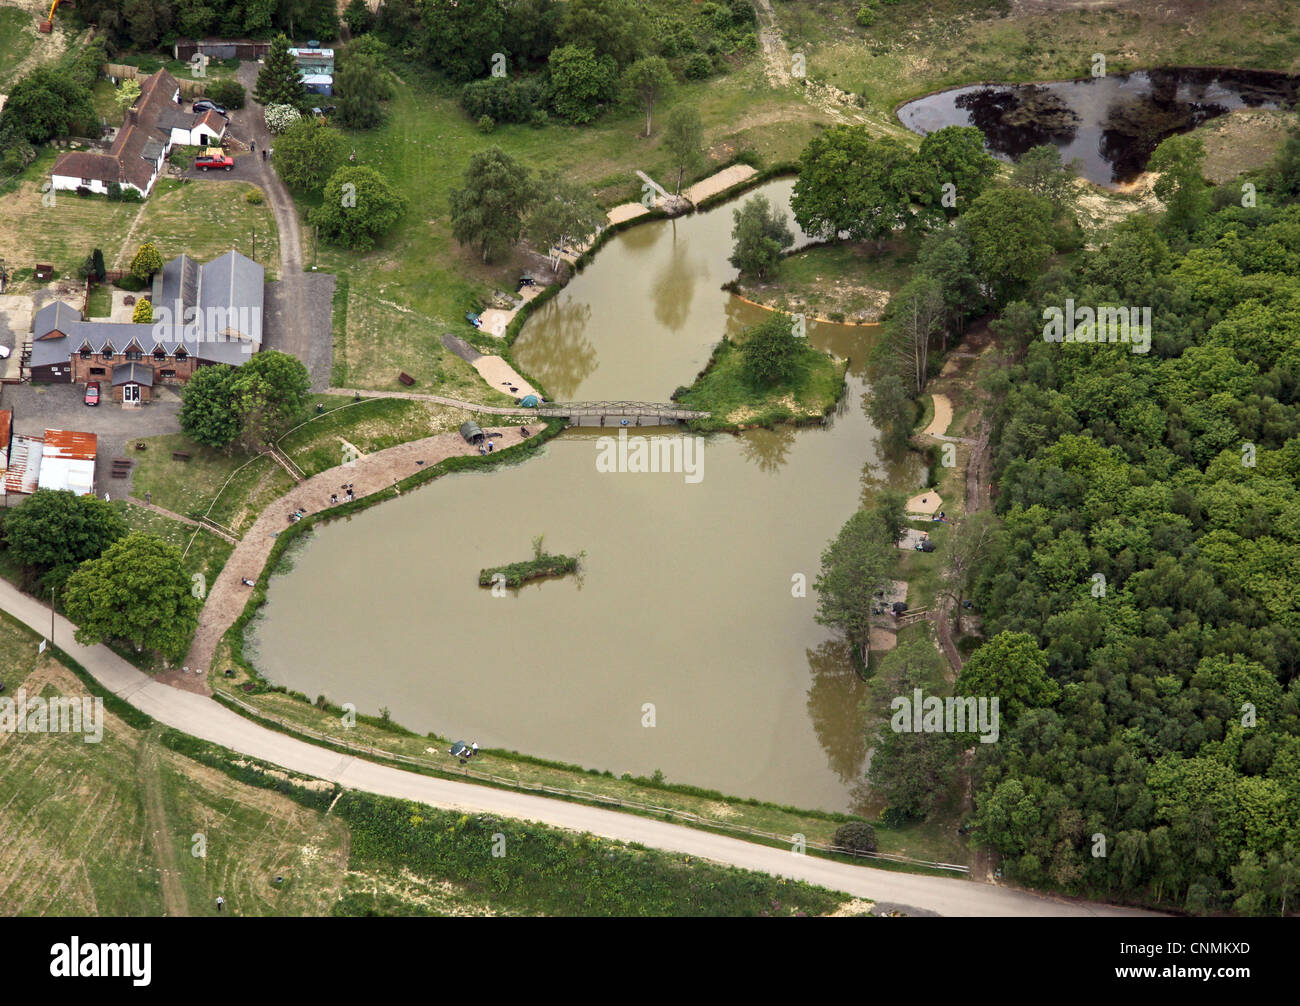 aerial view of a recreational fishing lake - Stock Image